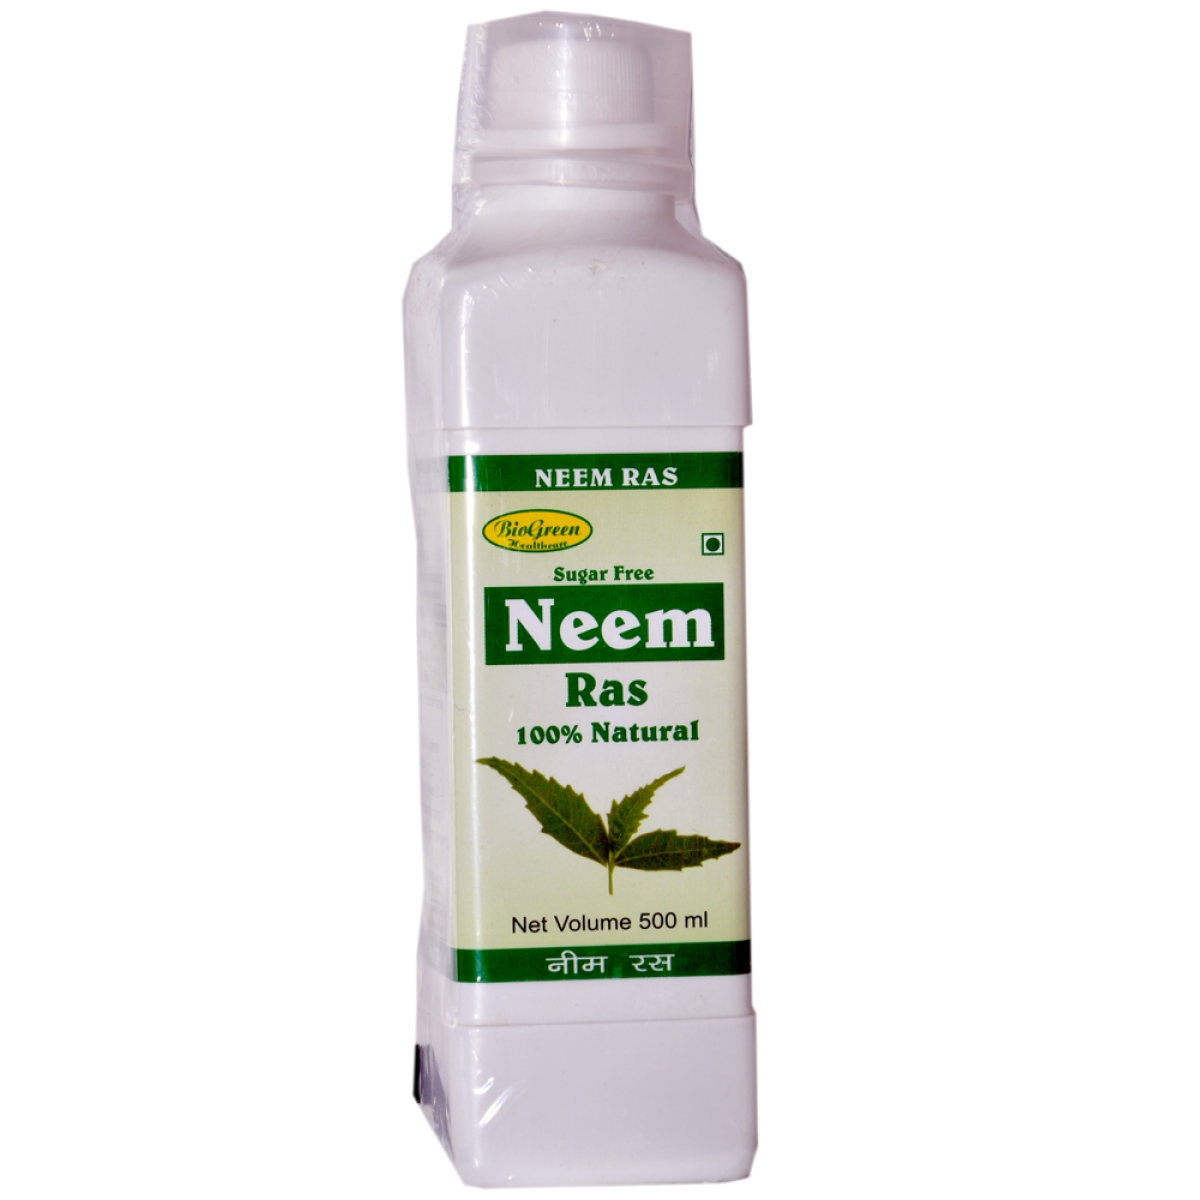 Neem Ras In Dharmanagar